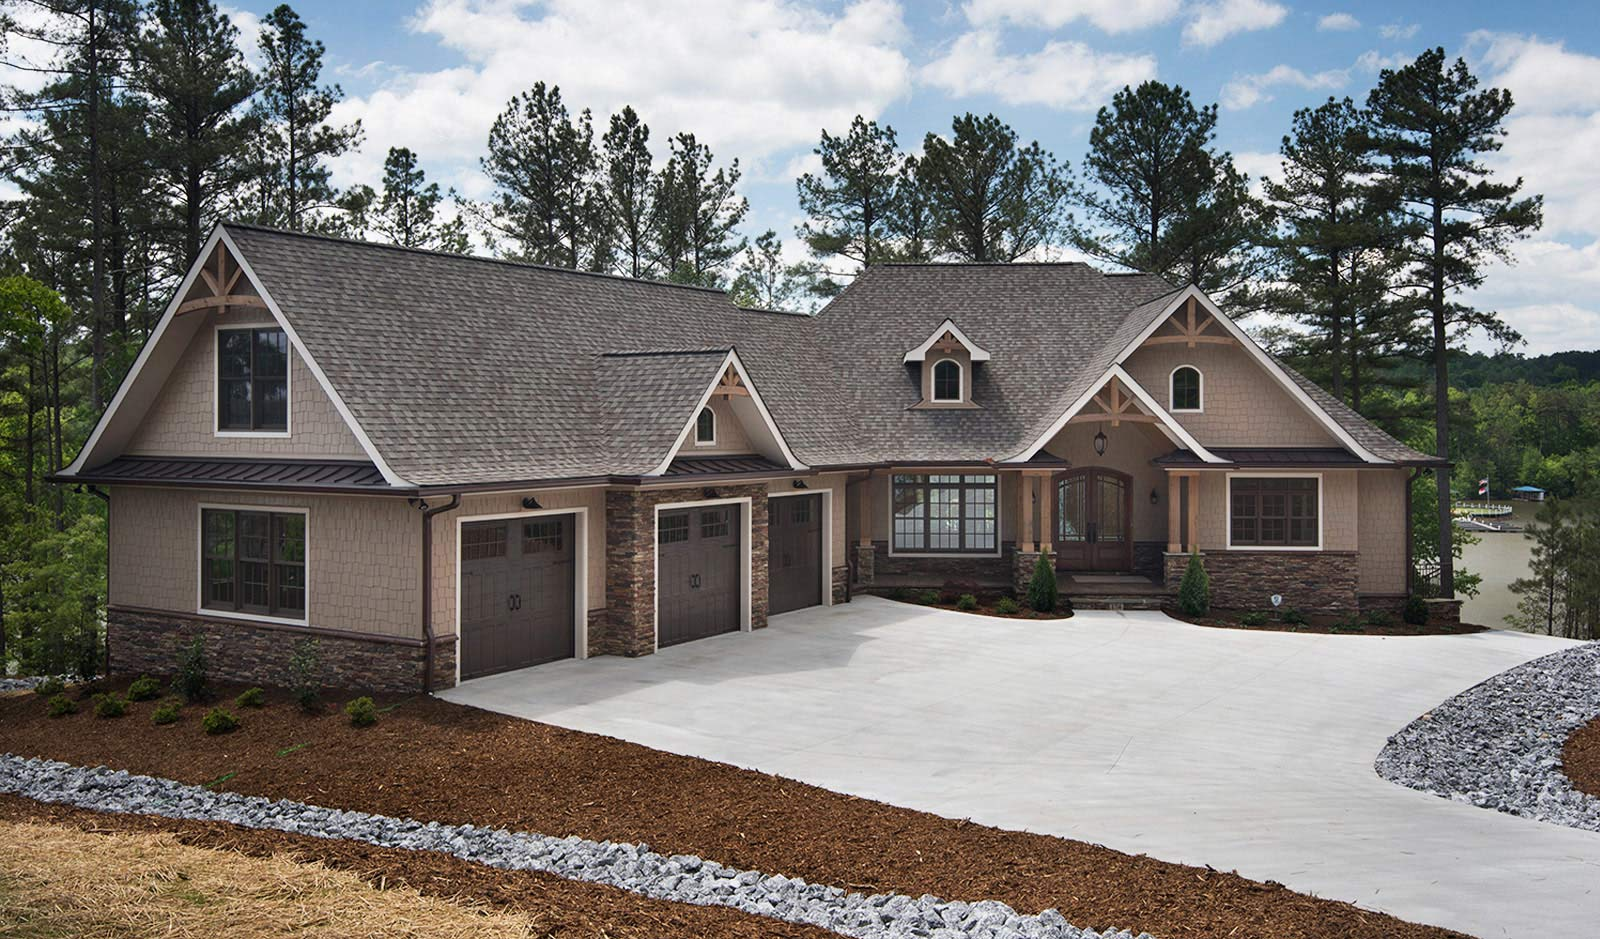 A custom home built by JCM Custom Homes